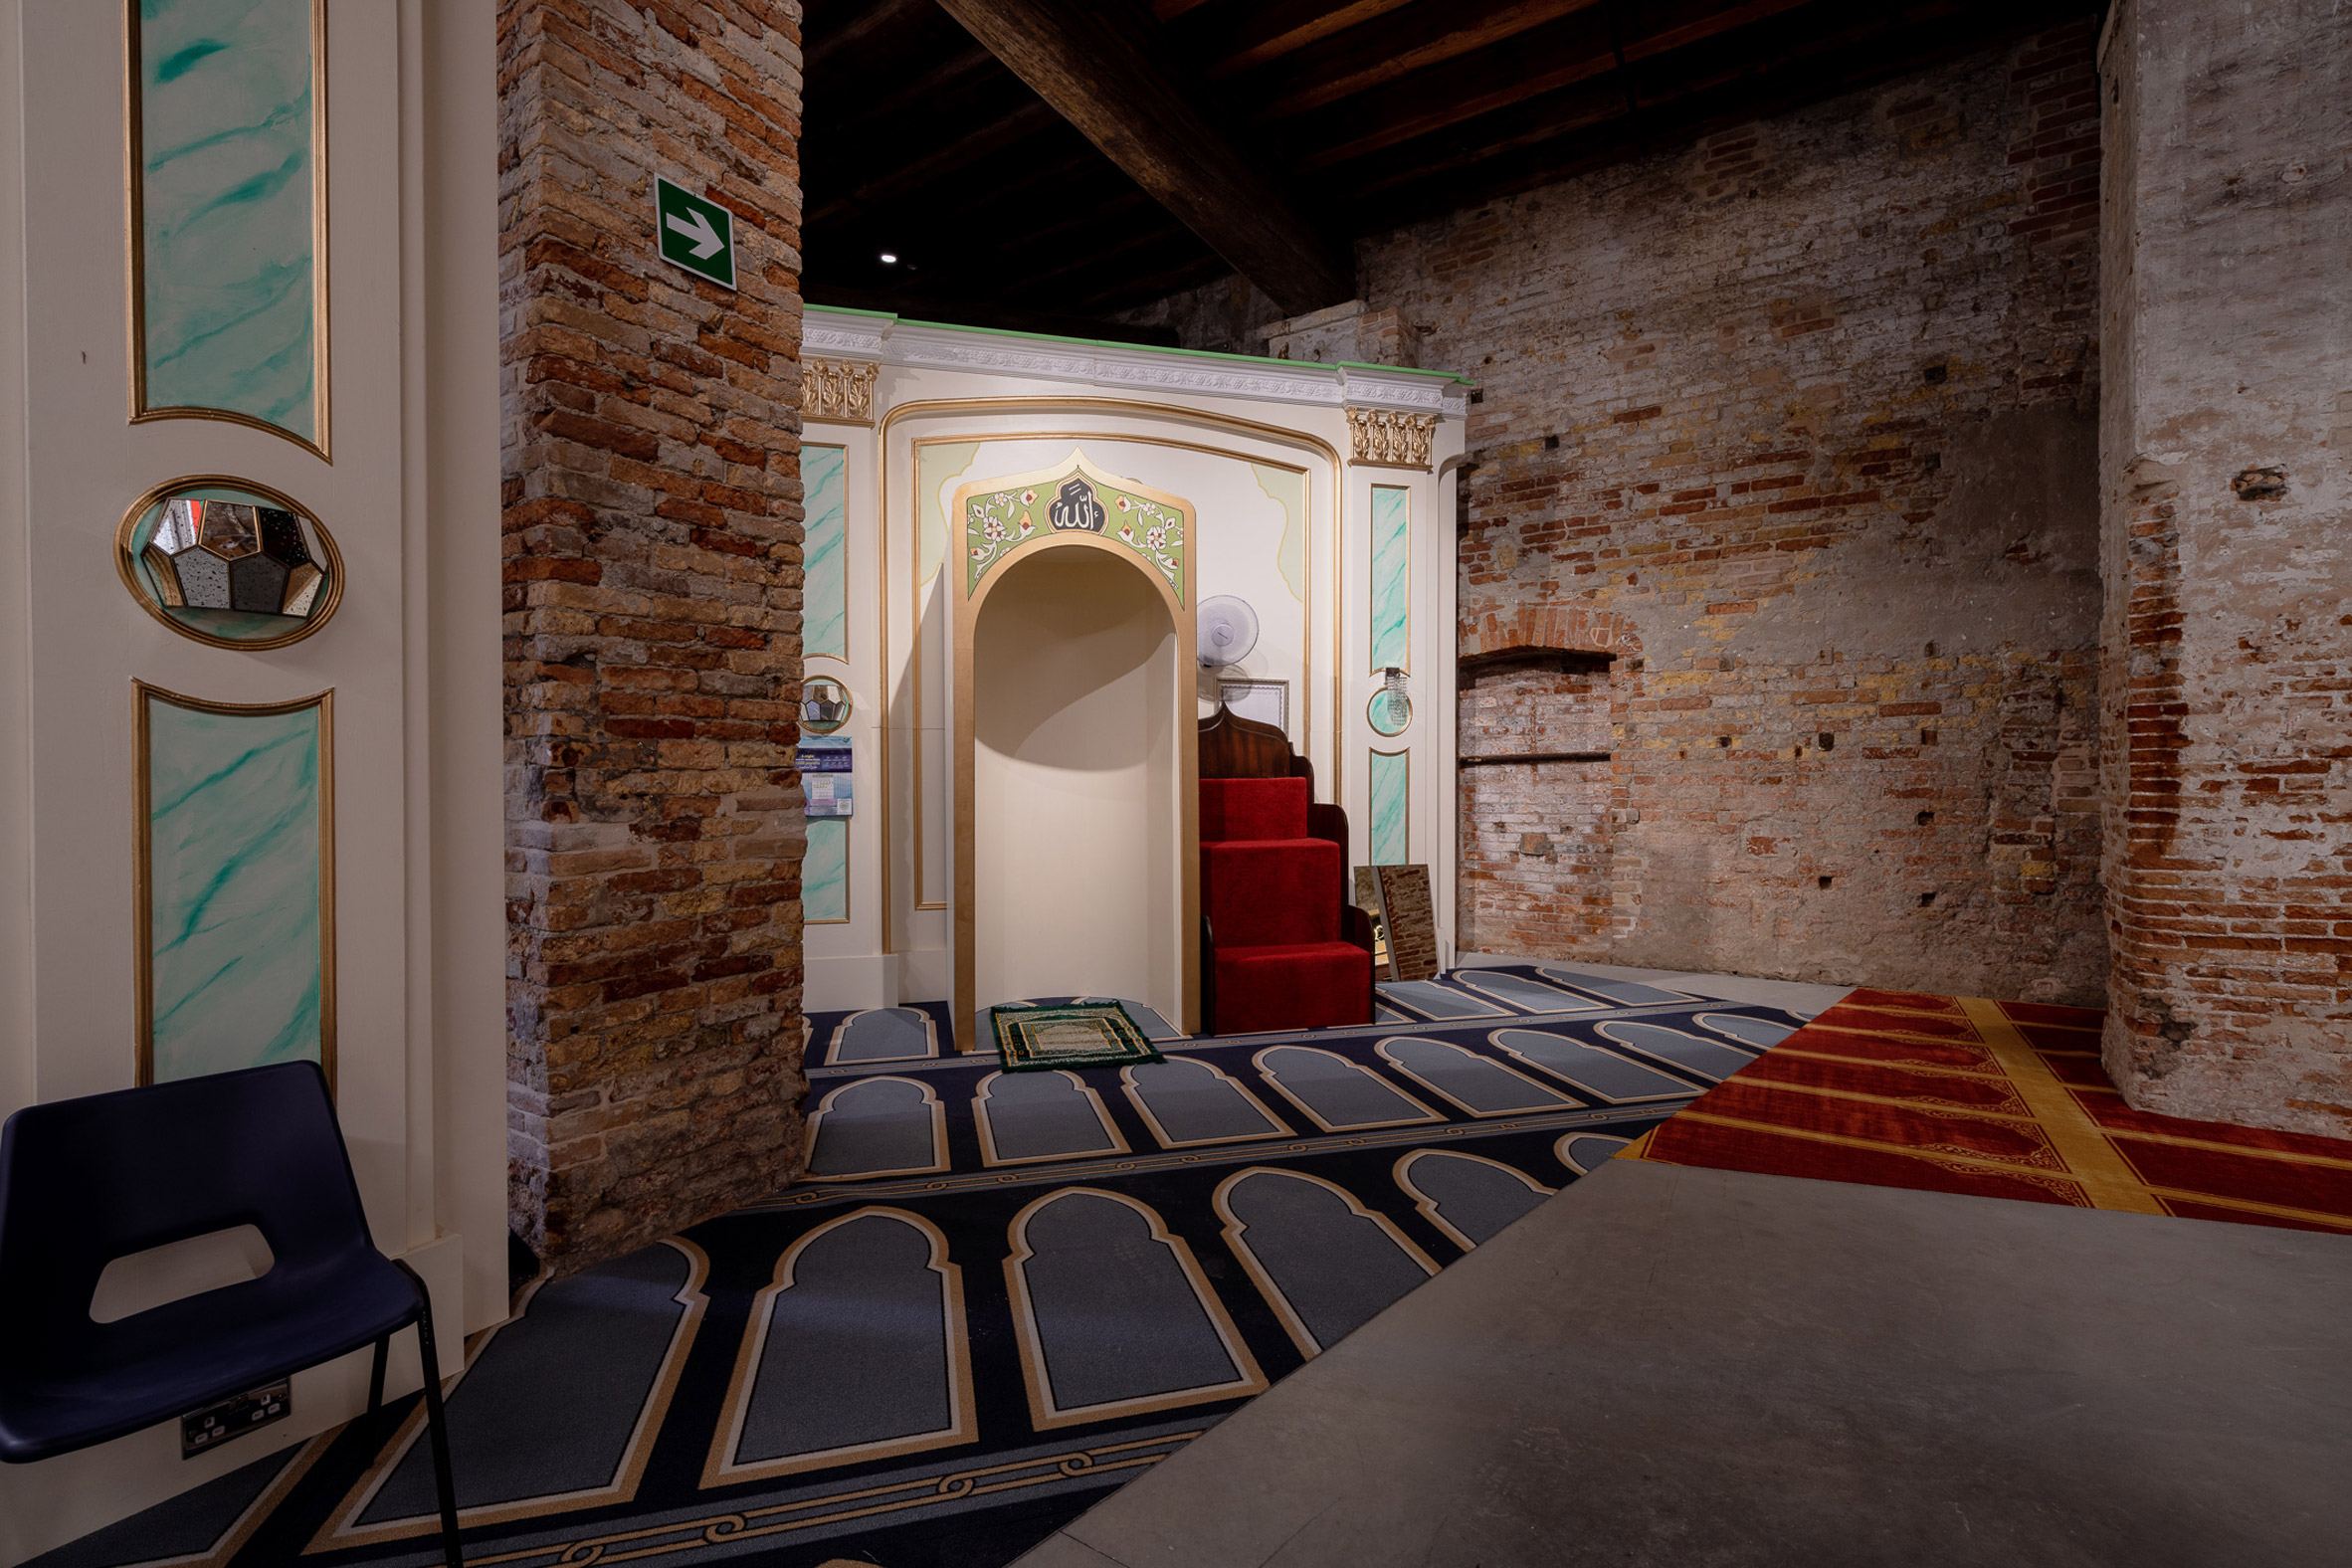 The models were placed within an exposed brick room